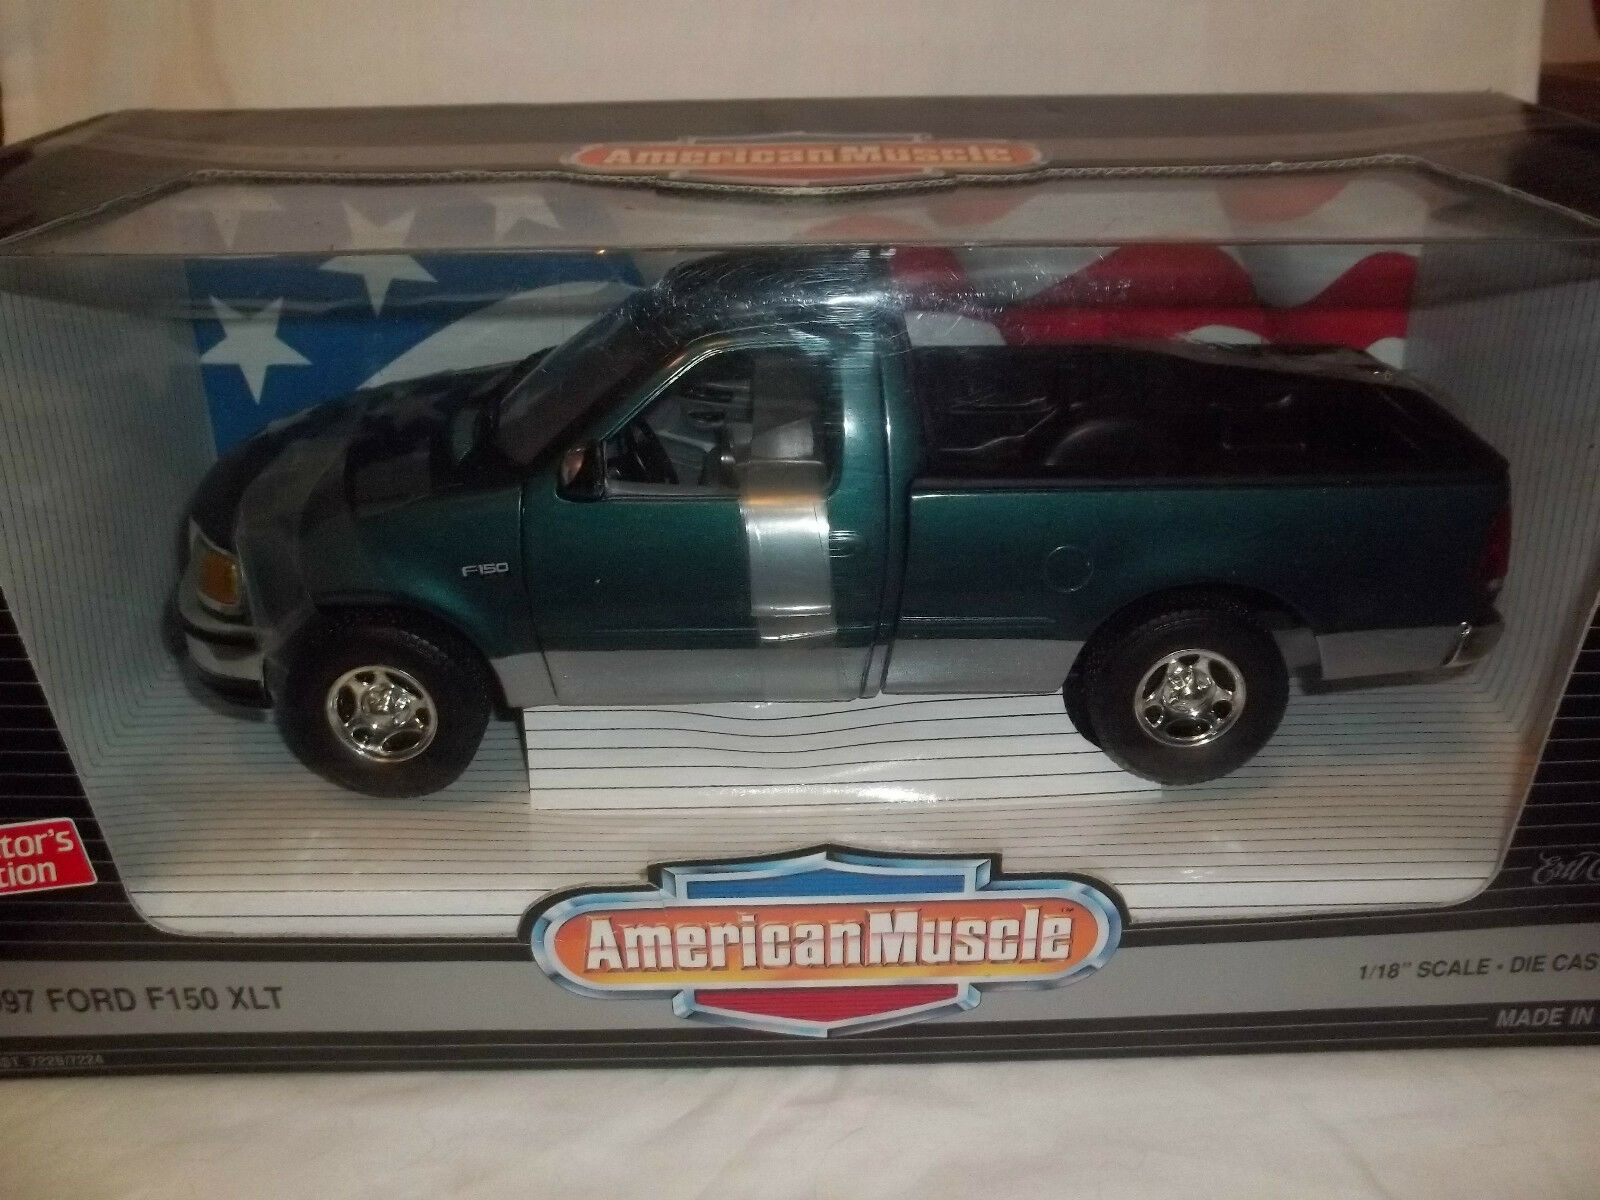 ERTL American Muscle 7224 1997 Ford F150 XLT Met Green 1 18 Mint & Boxed